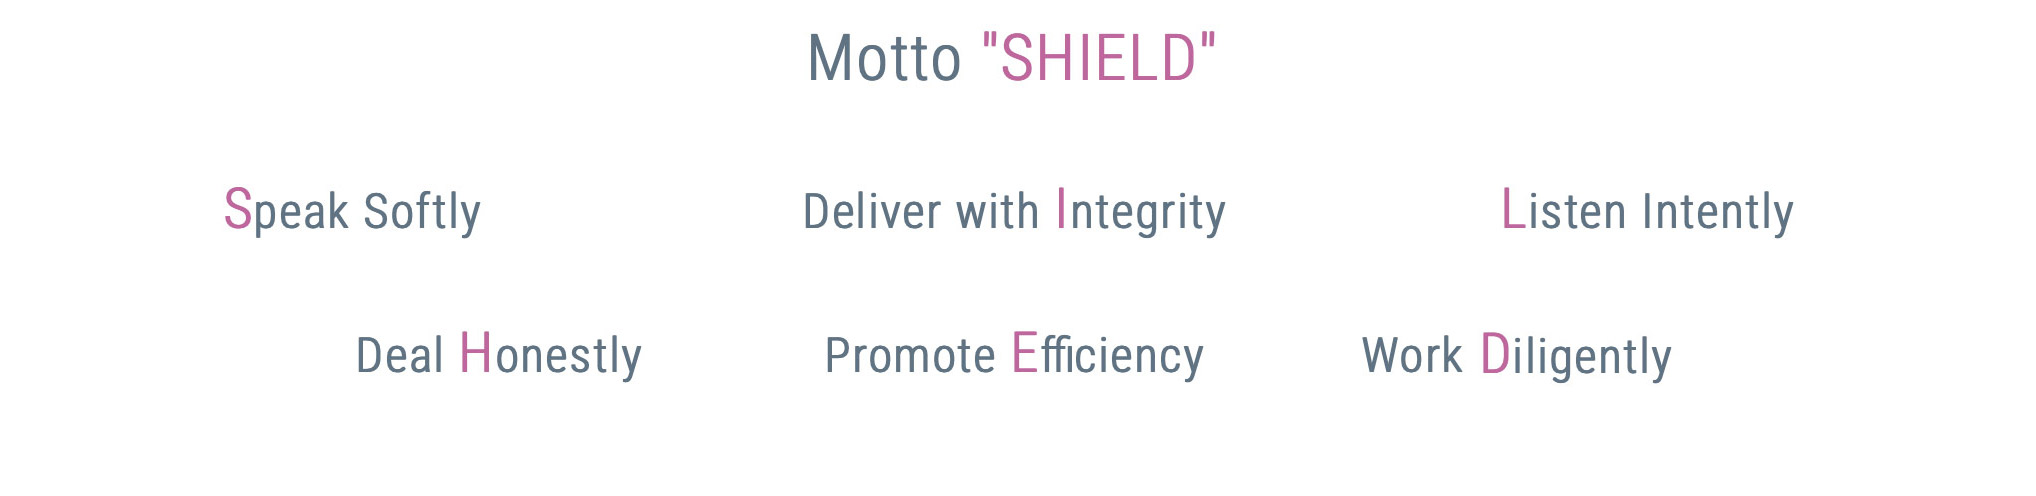 Our Motto SHIELD Contains our Values